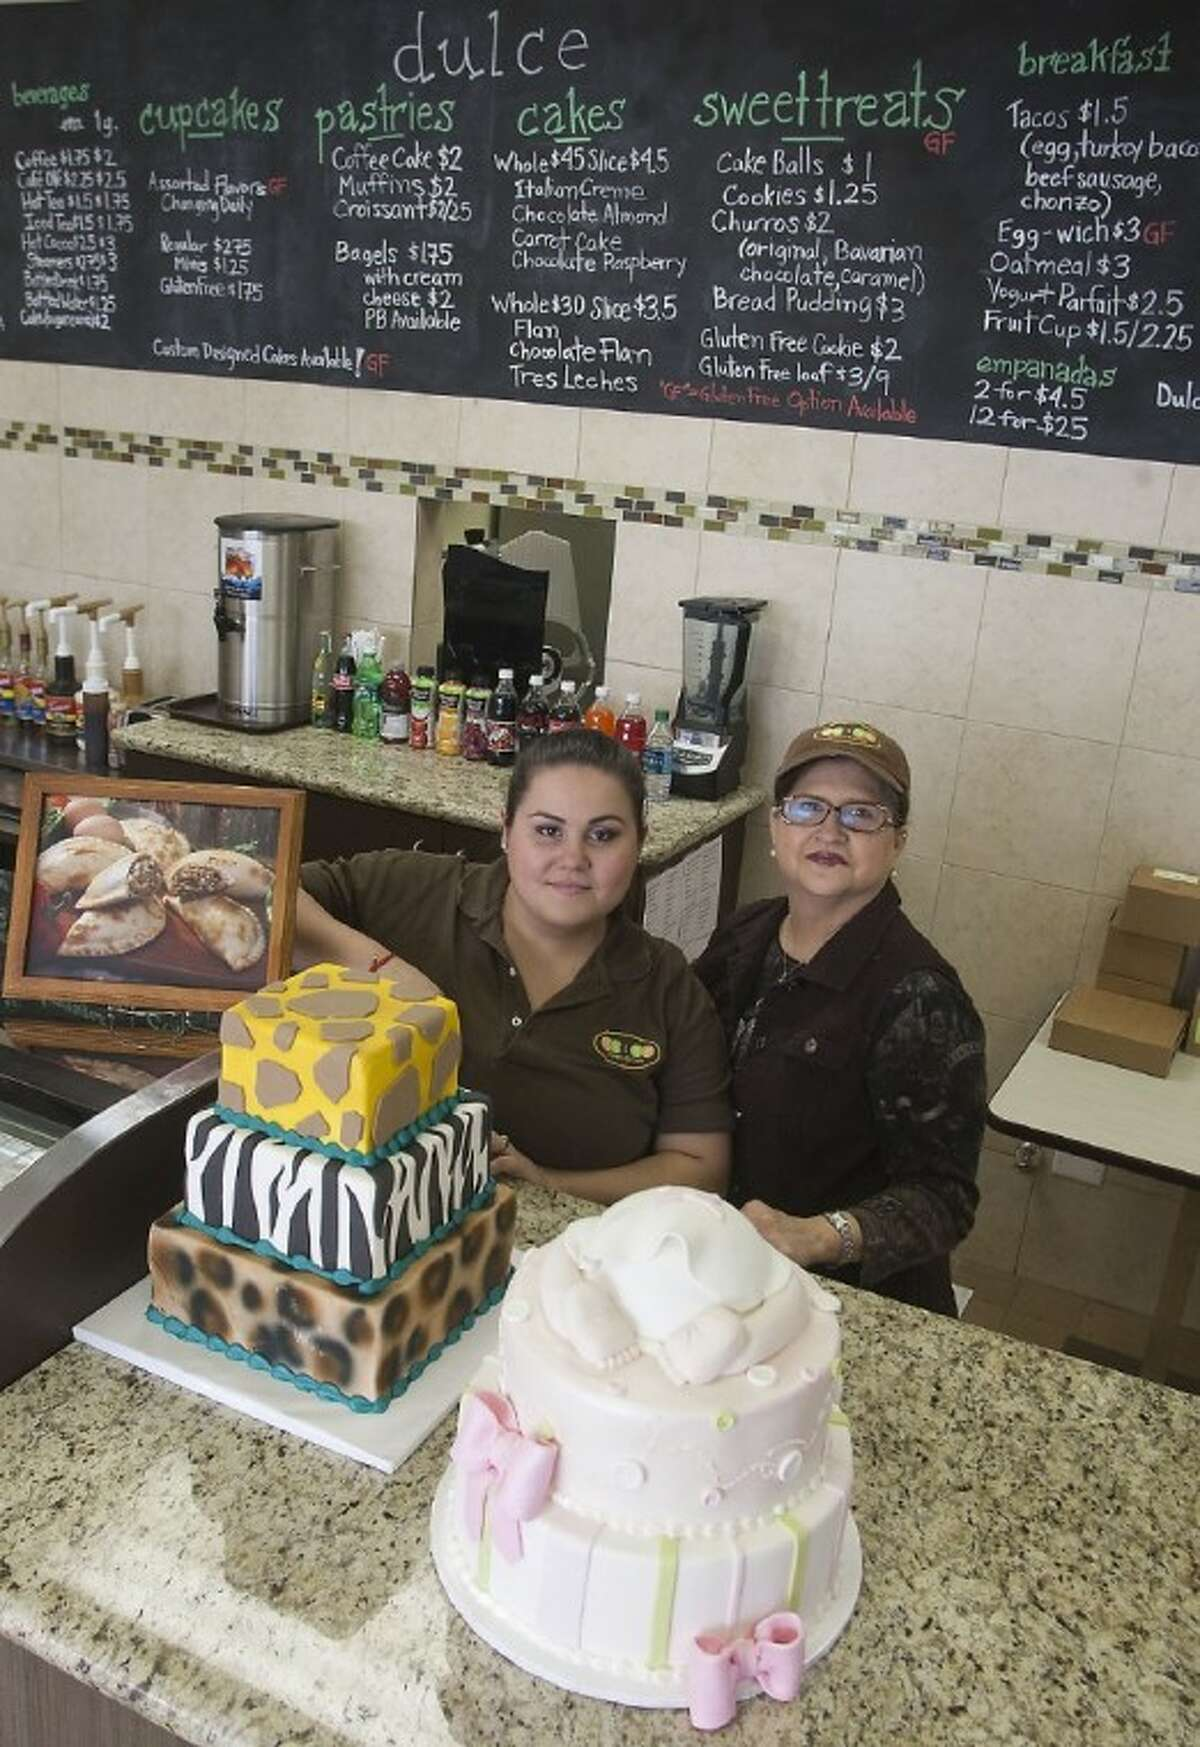 Photo by PATRIC SCHNEIDER/The RancherChef Cristina Gutierrez prepares custom-decorated cakes for Dulcé Bakery and Café while her mother, Priscilla Vazquez makes specialty coffee drinks from homemade recipes.